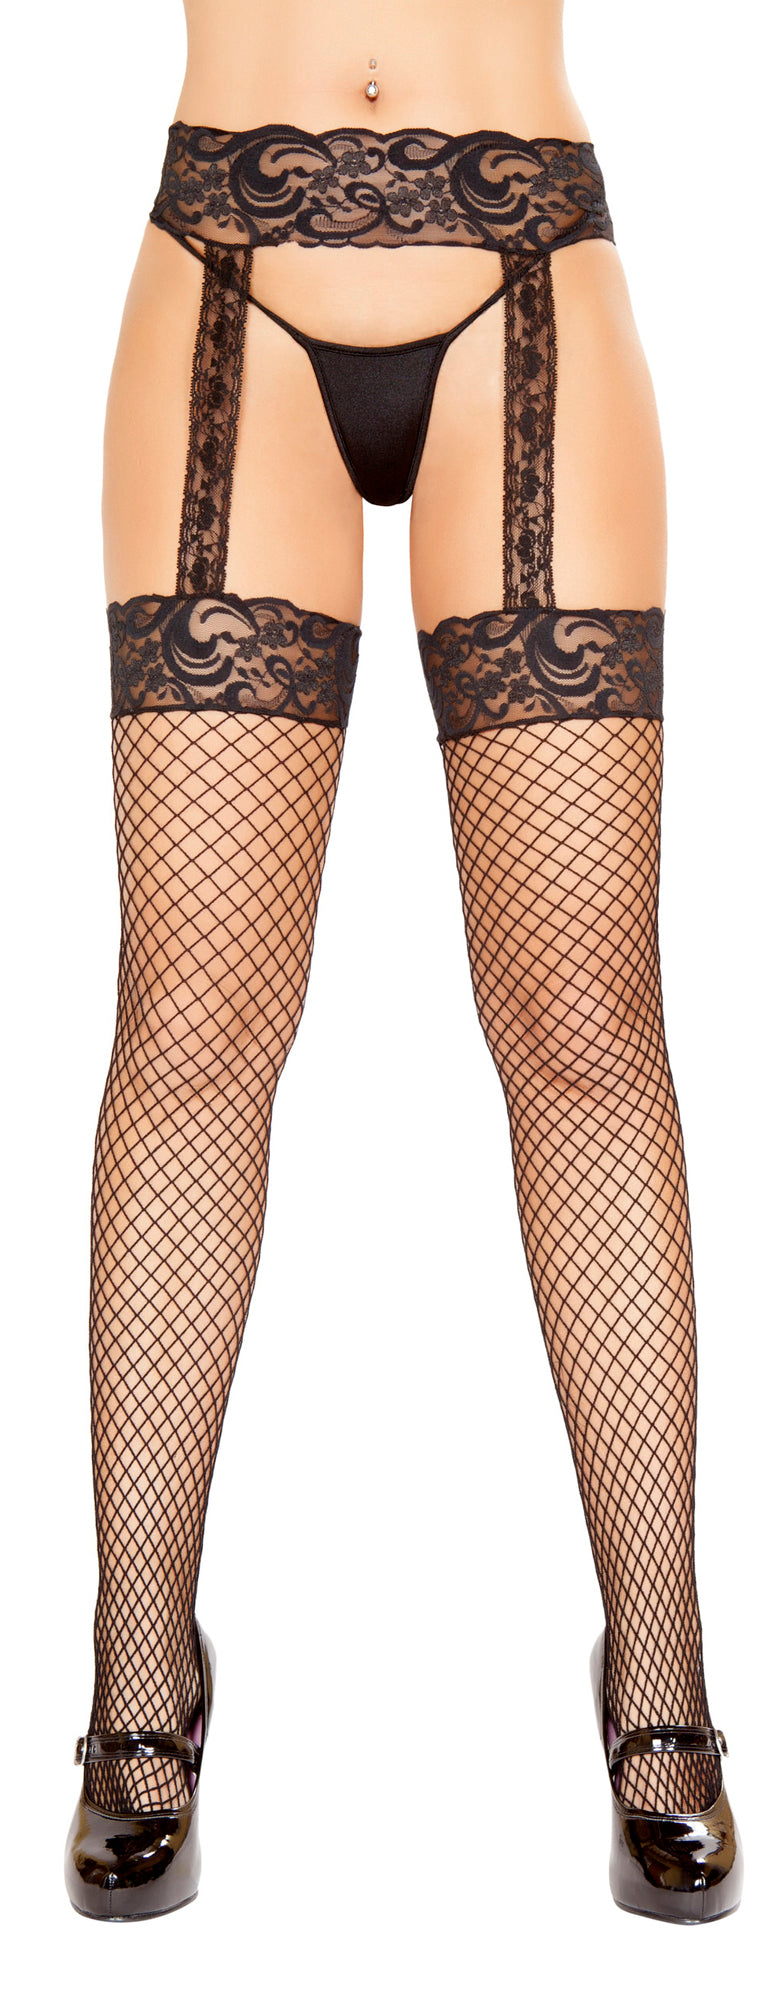 RM-ST104 Fishnet Stocking with Lace Garter Belt